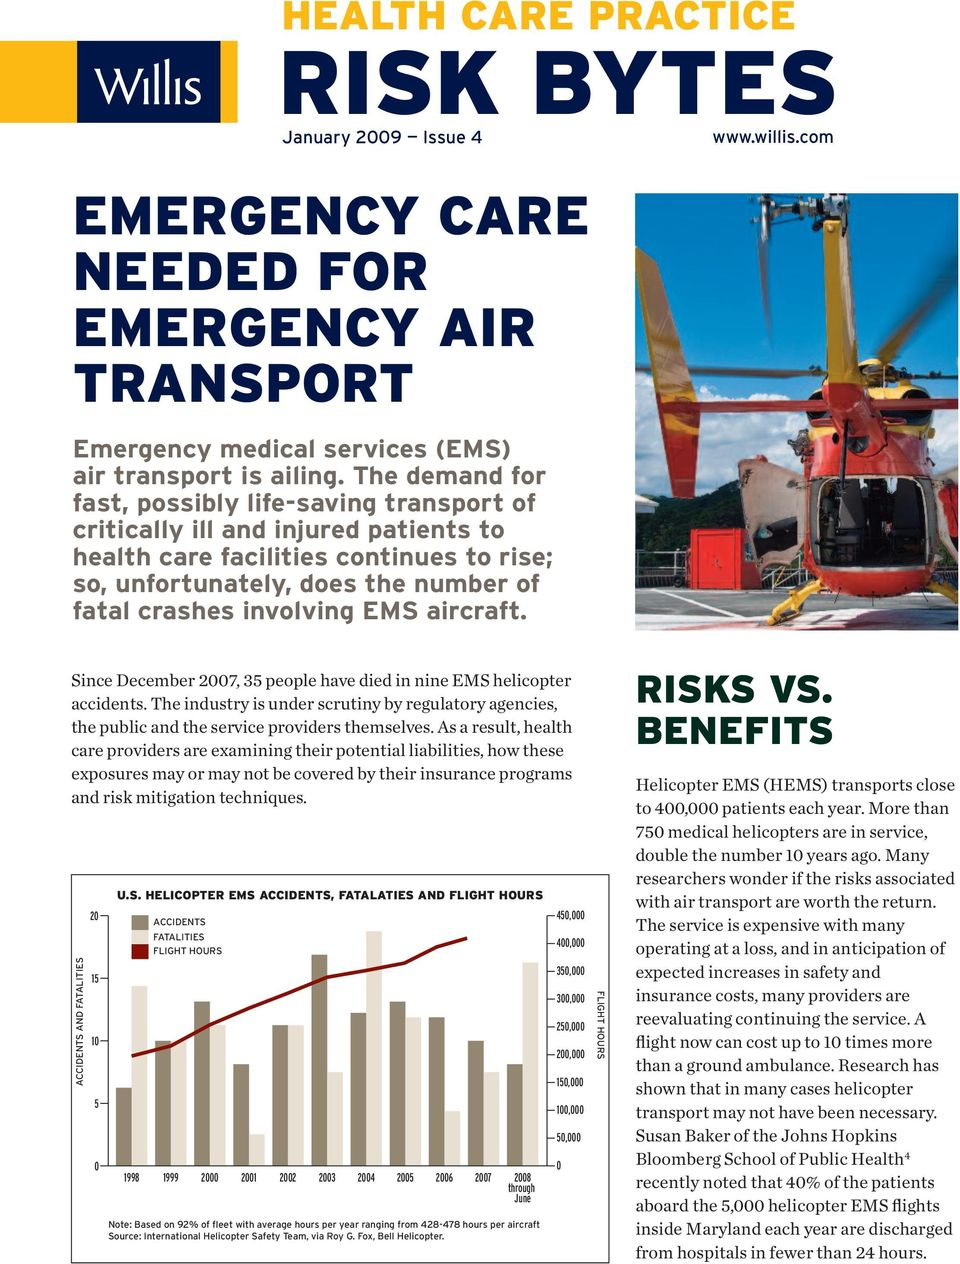 EMS aircraft. Since December 2007, 35 people have died in nine EMS helicopter accidents. The industry is under scrutiny by regulatory agencies, the public and the service providers themselves.